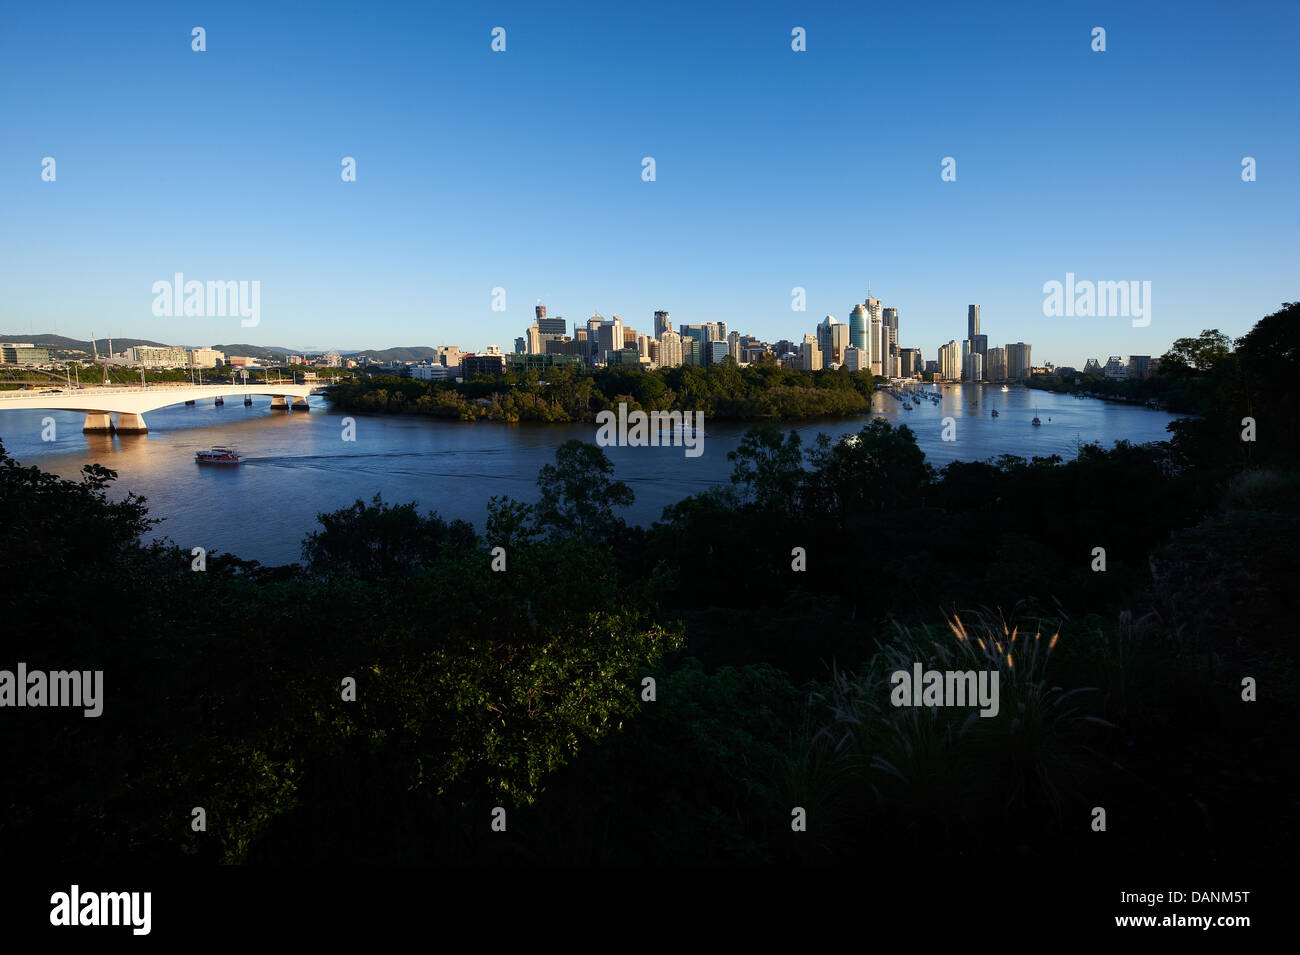 Brisbane central business district nestled behind the Botanical Gardens - Stock Image